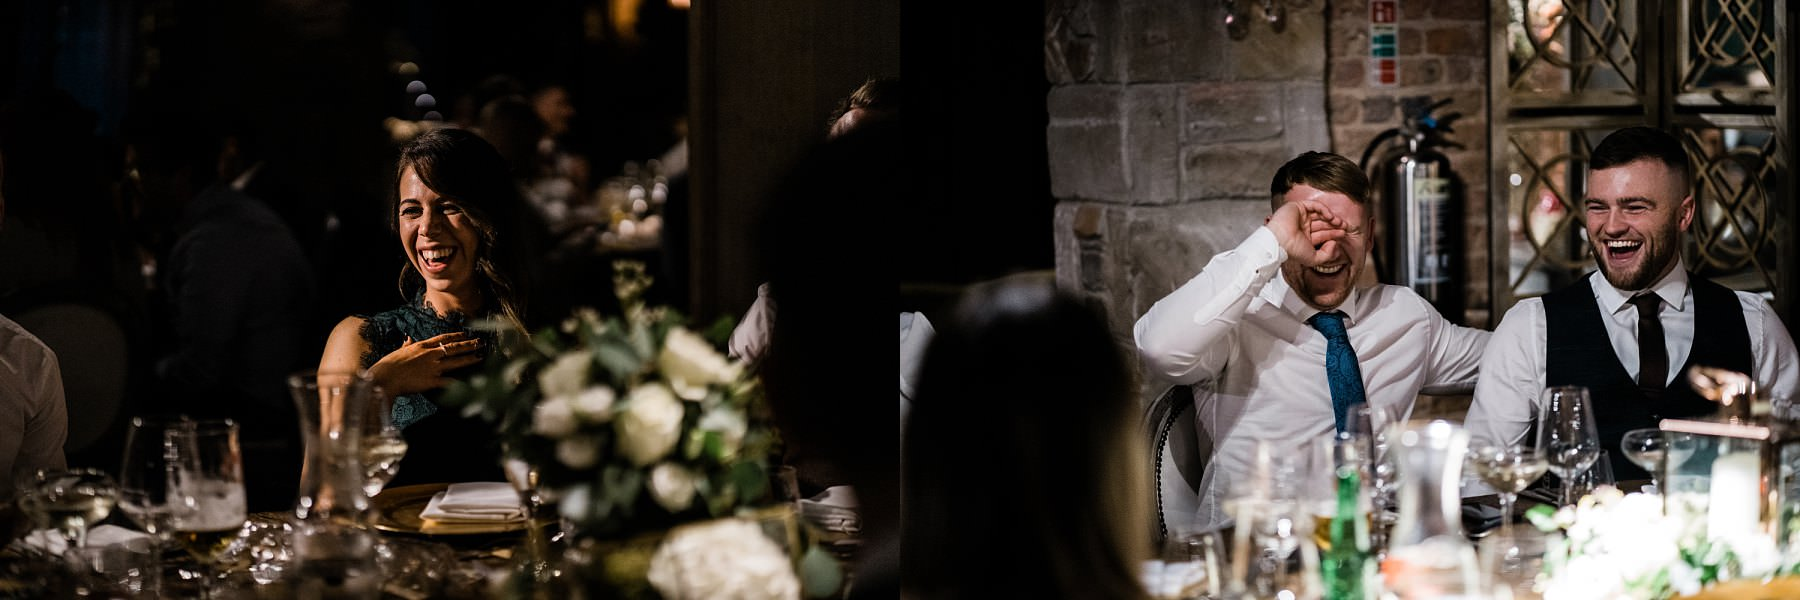 Wedding breakfast Le petite Chateau wedding - Newcastle Wedding Photographer